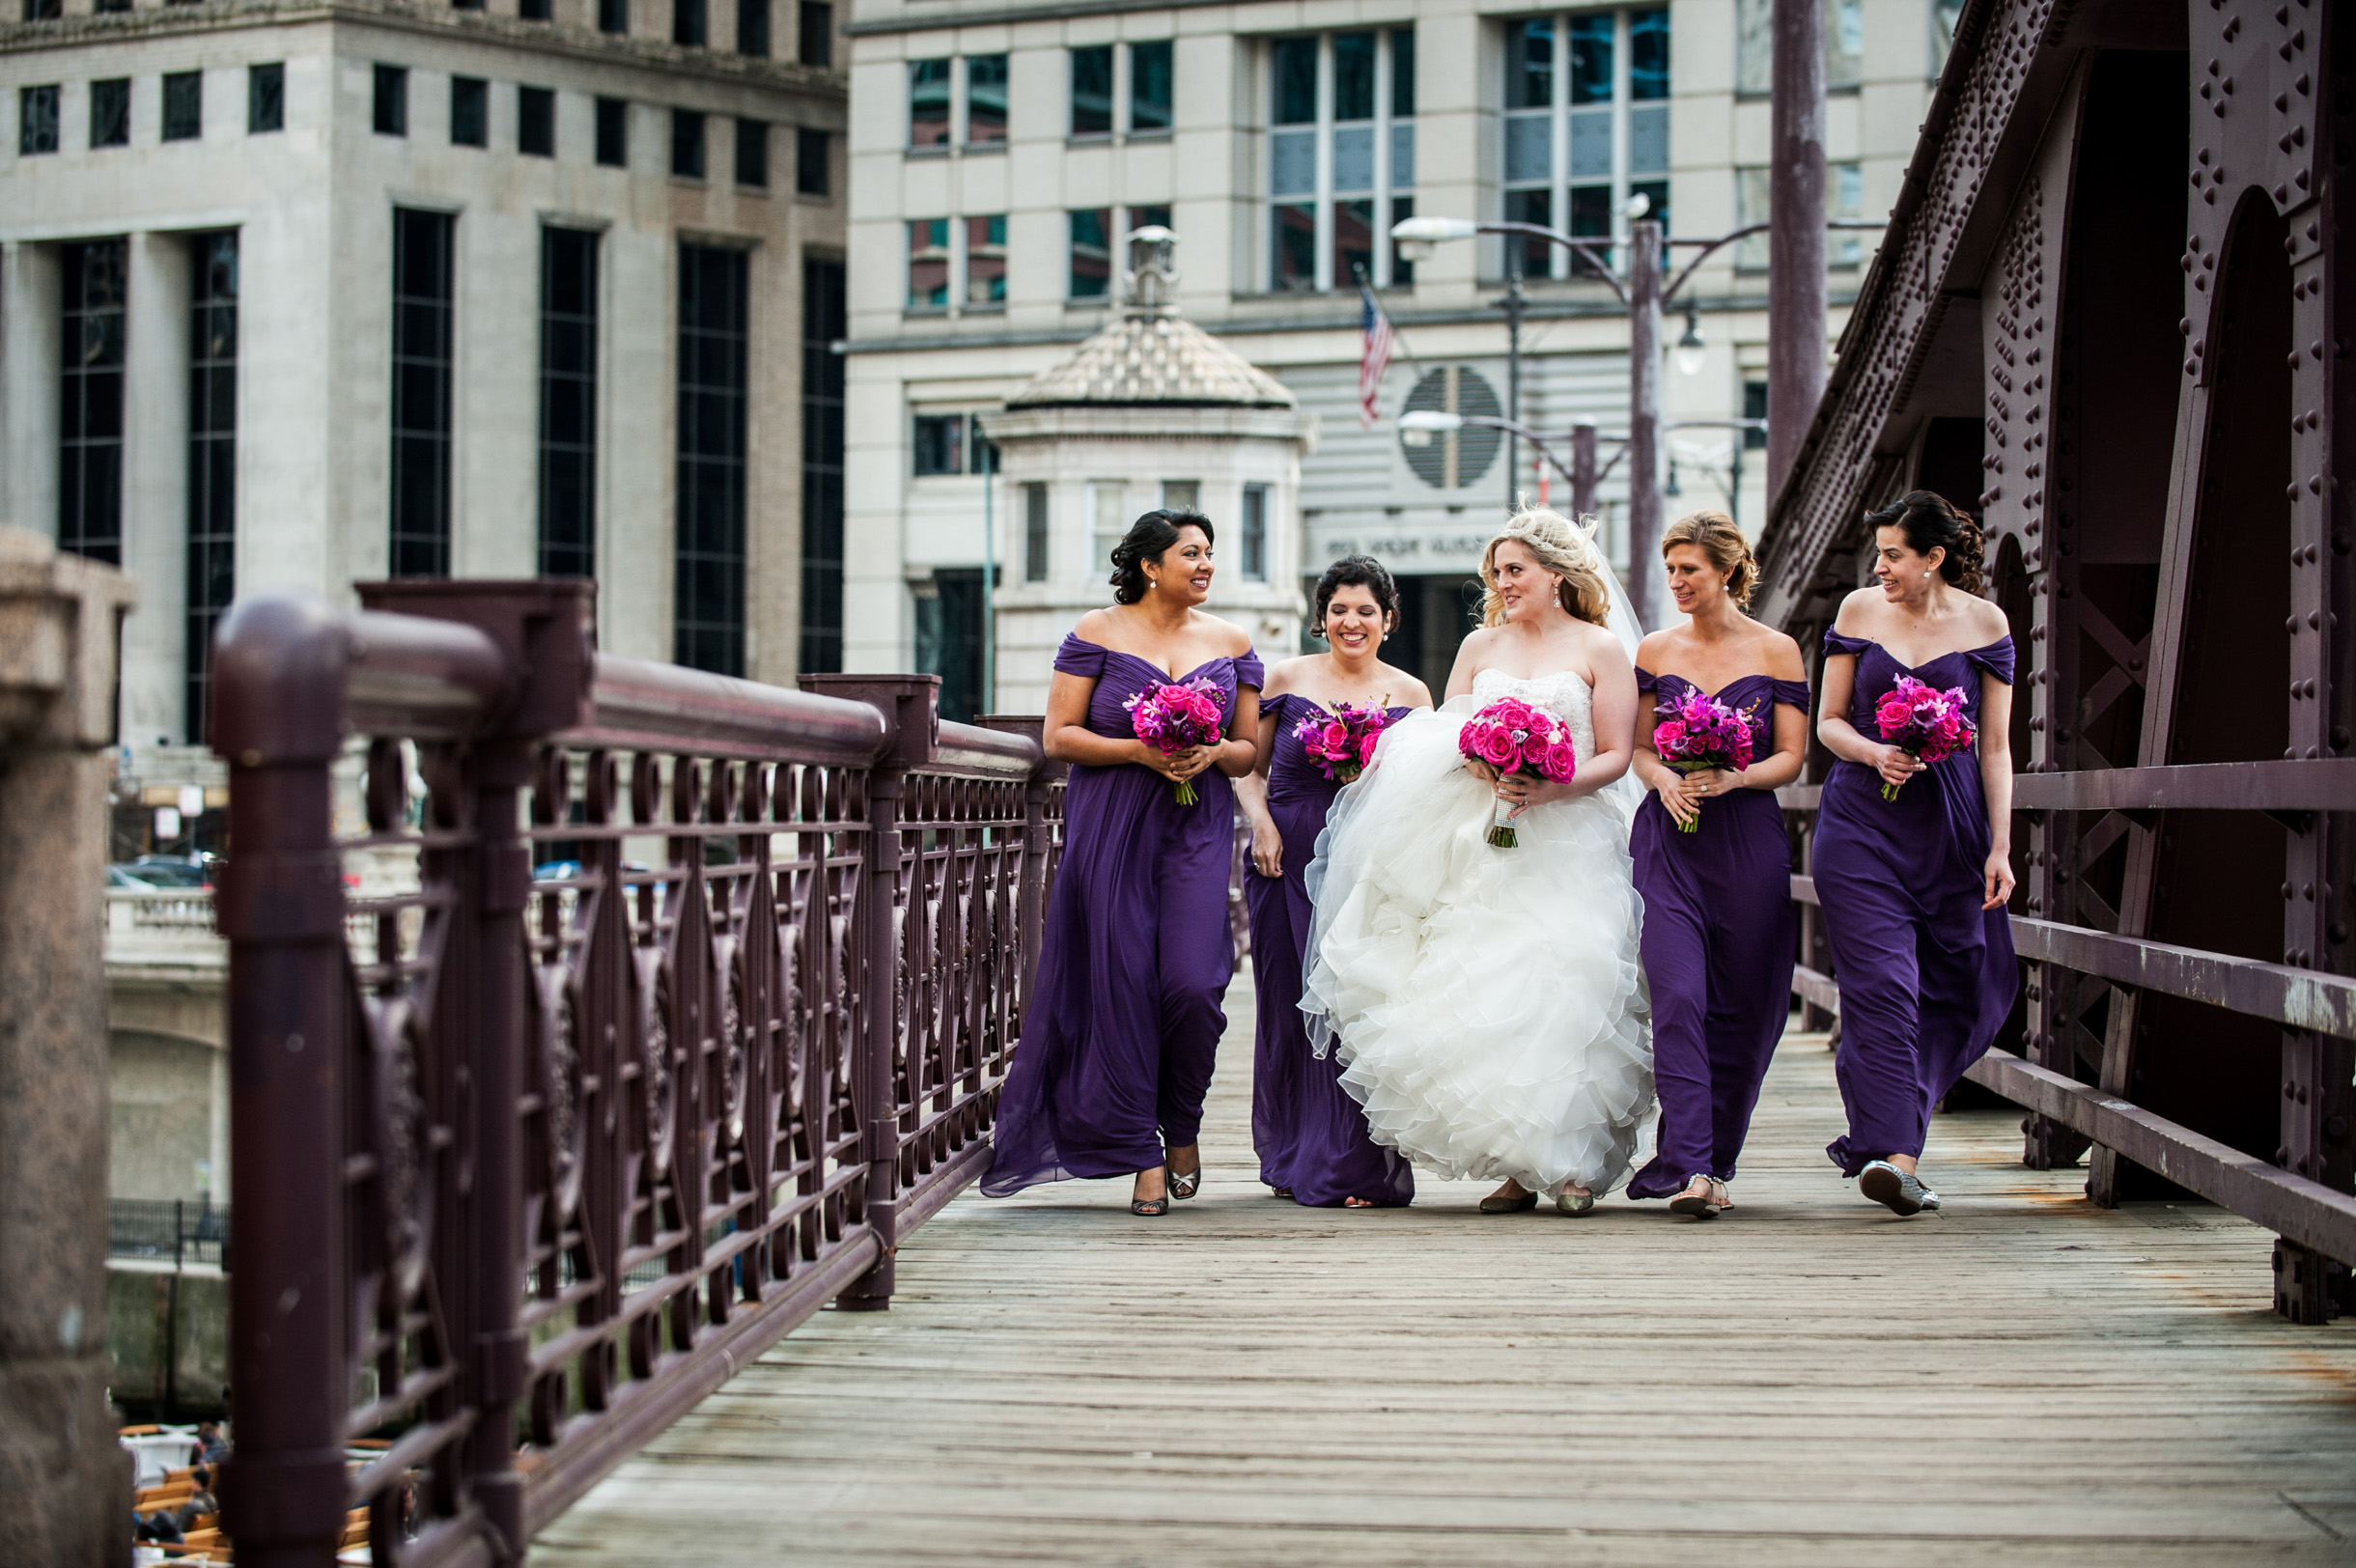 Bride and bridesmaids in purple dresses walking across bridge in downtown Chicago-183